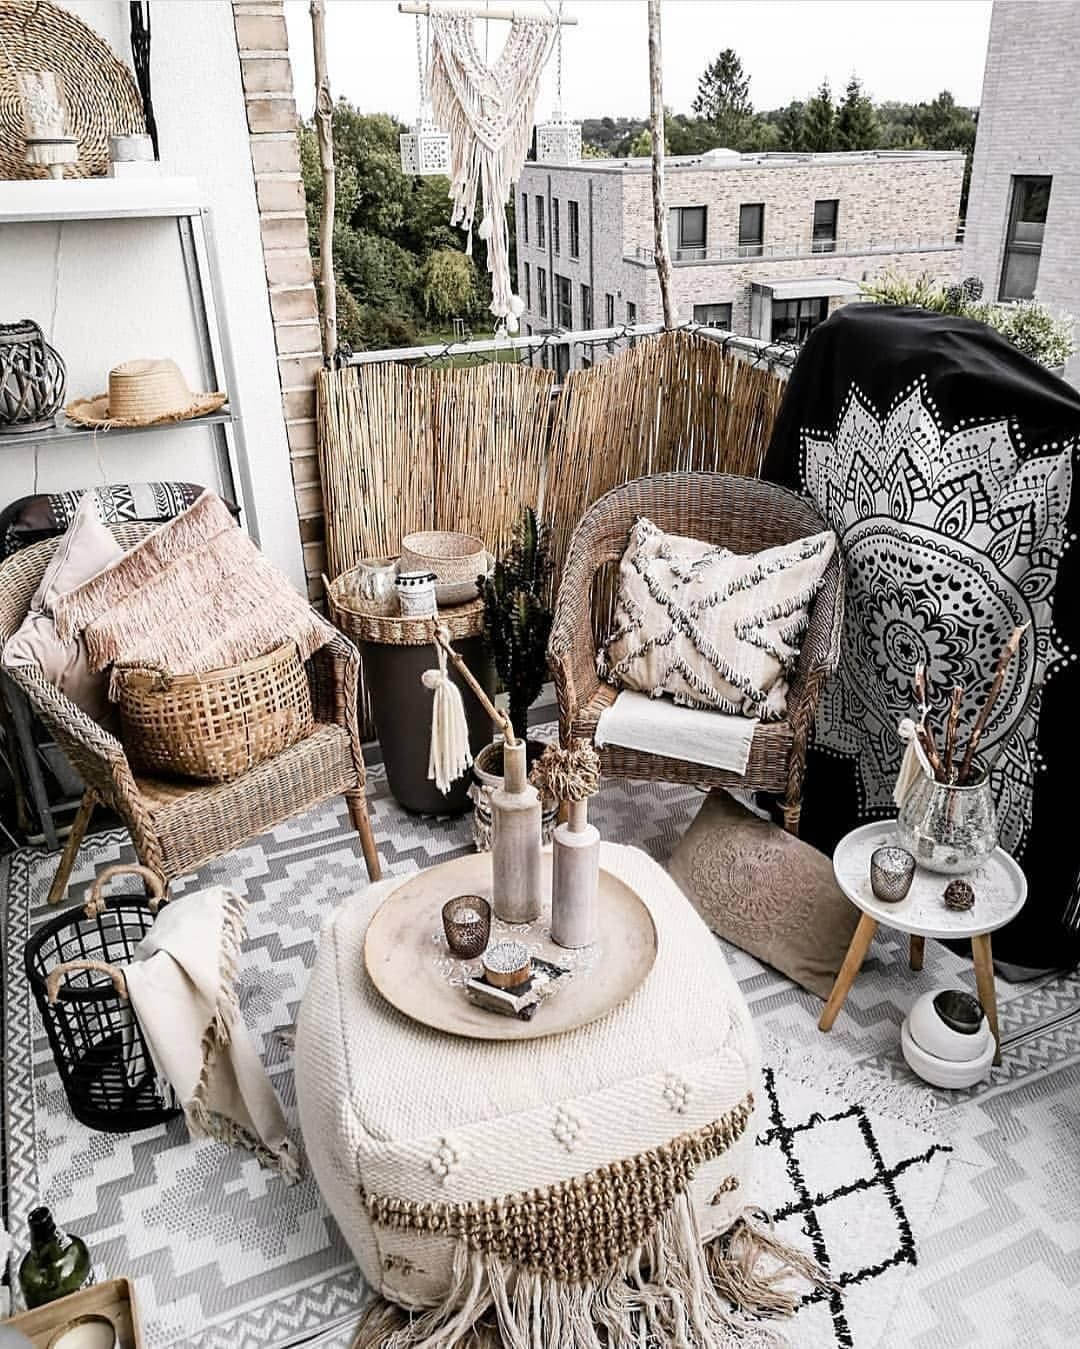 The Best Decorated Small Outdoor Balconies on Pinterest #outdoorbalcony